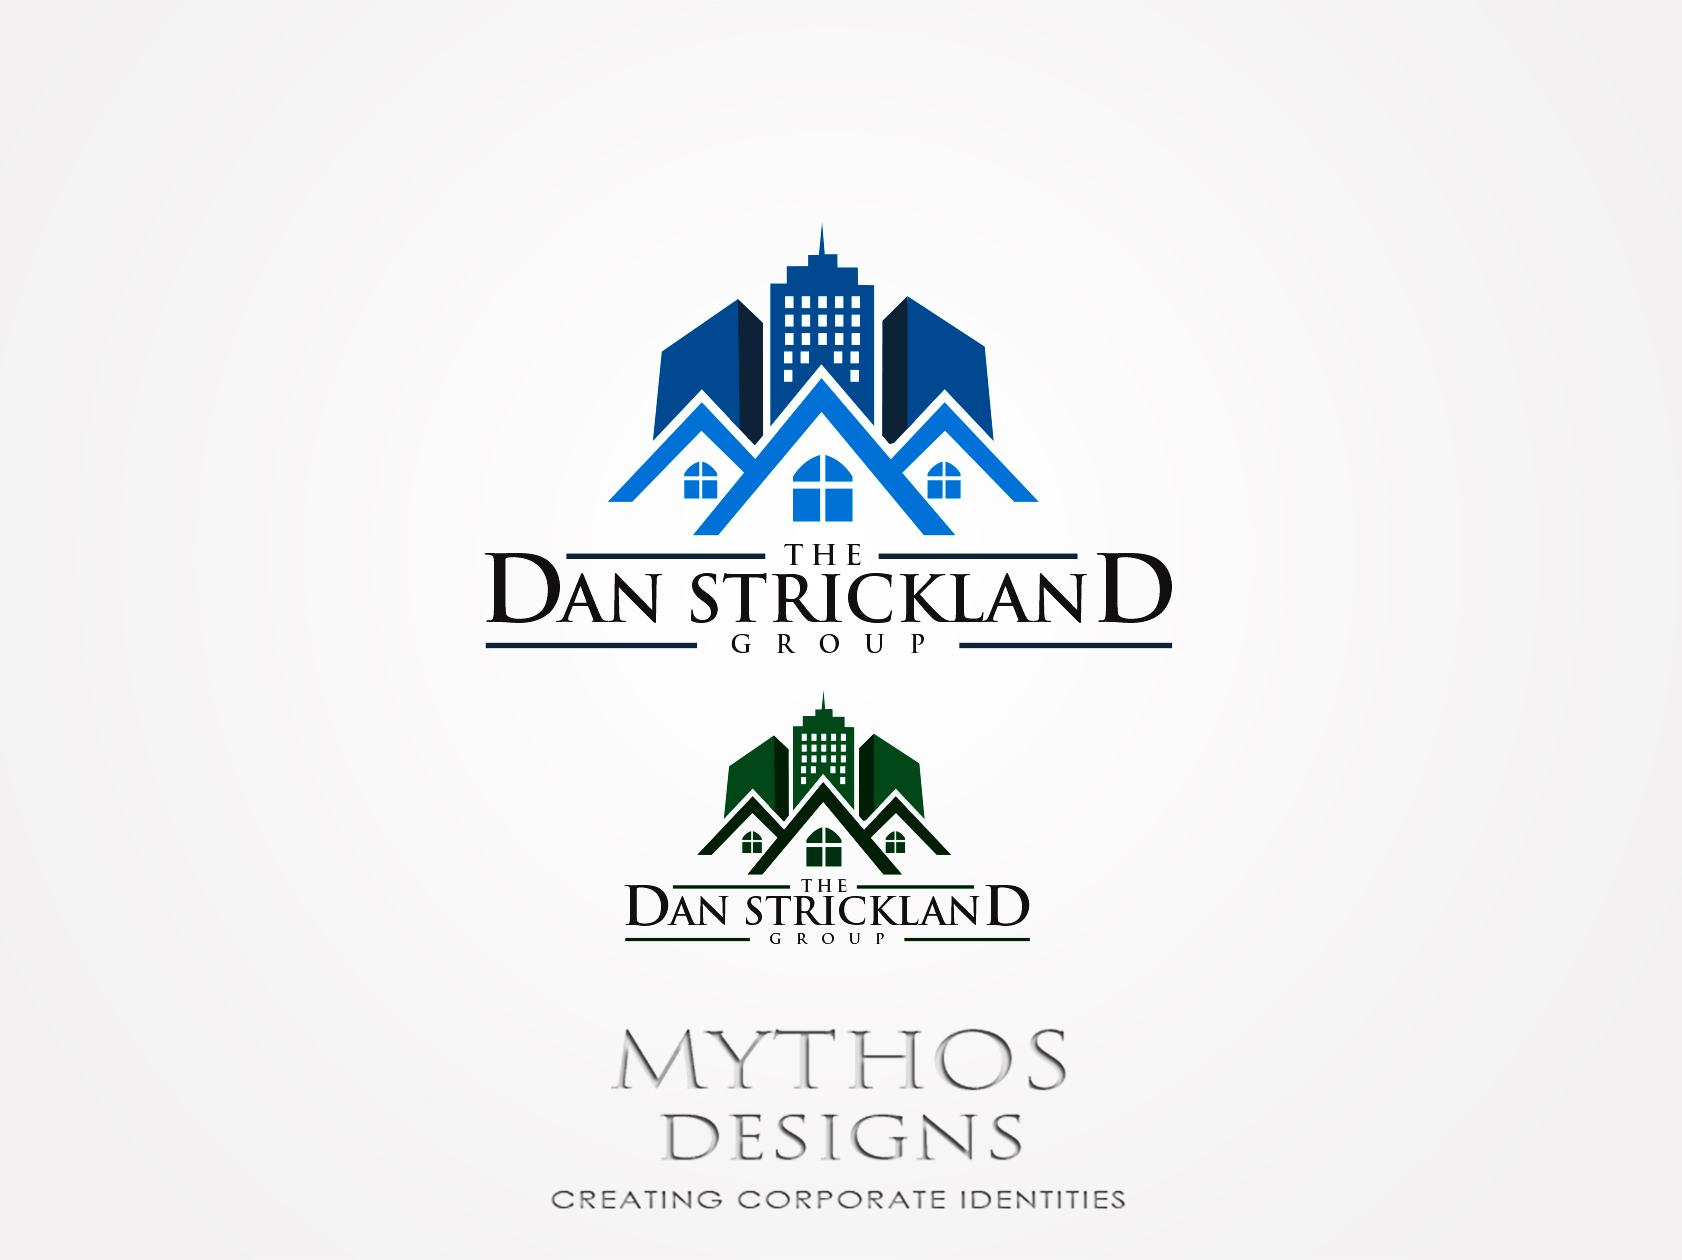 Logo Design by Mythos Designs - Entry No. 314 in the Logo Design Contest Creative Logo Design for The Dan Strickland Group.